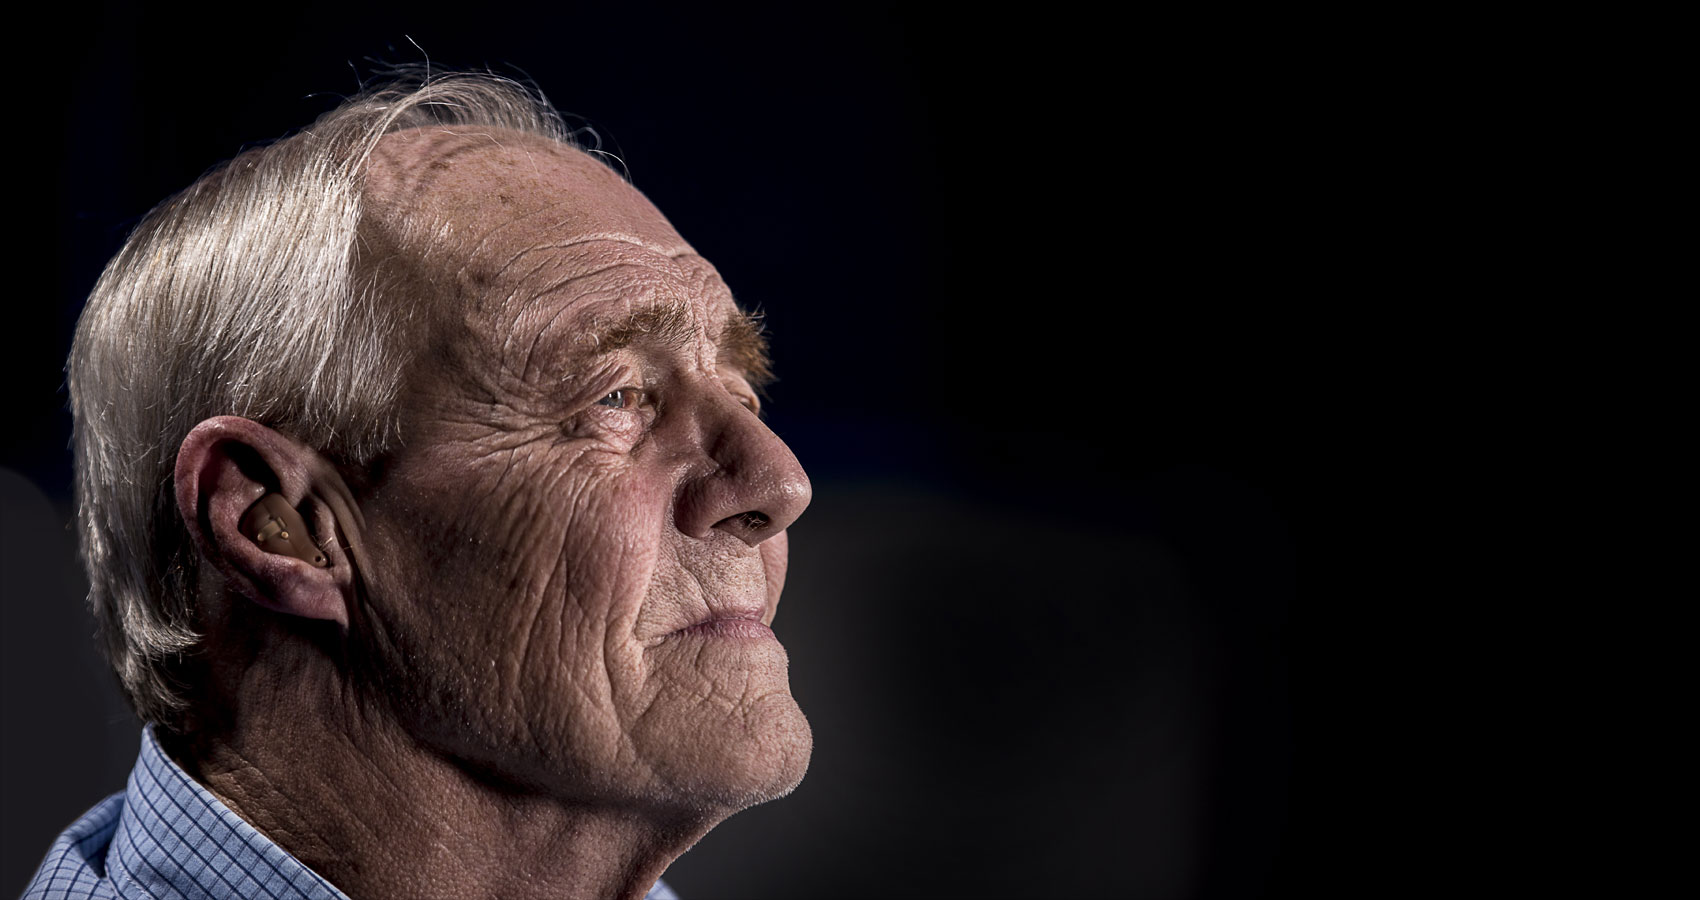 On Ageing and Death written by Tom Stodulka at Spillwords.com